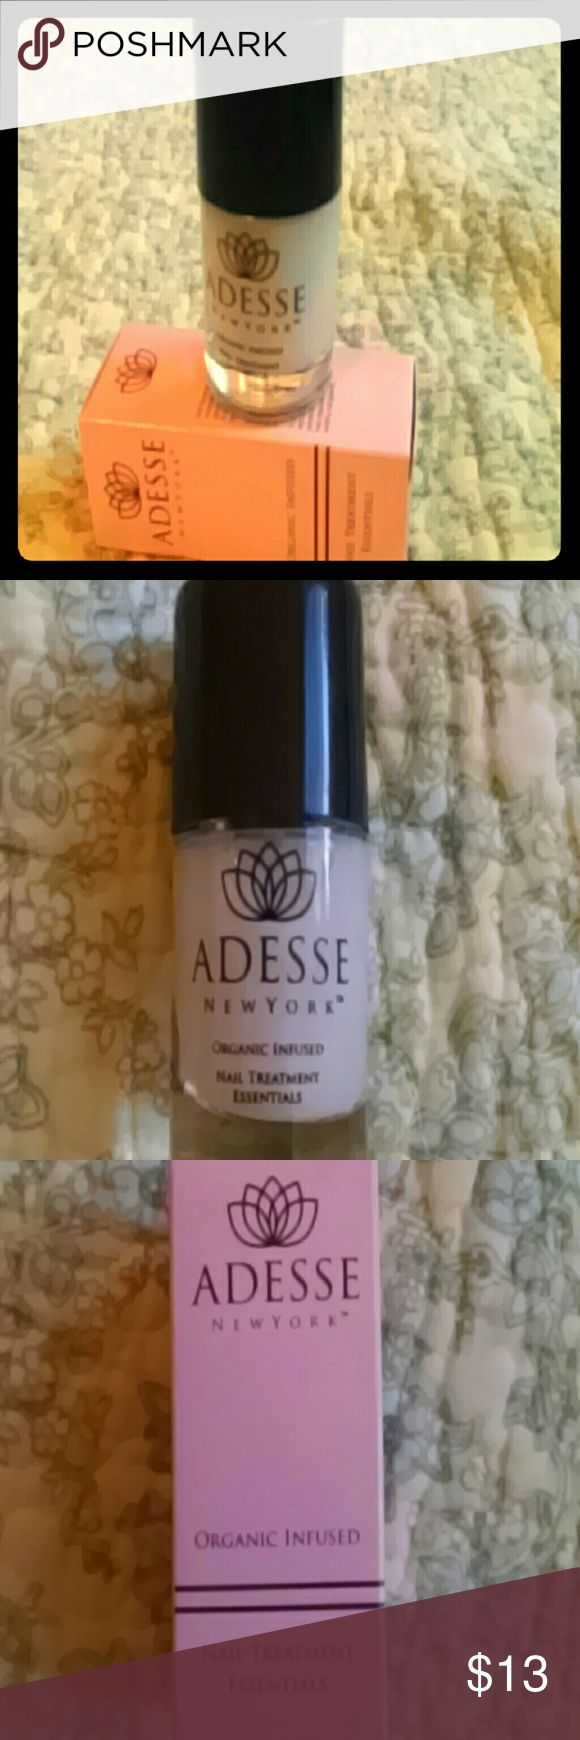 NEW Full-size? organic nail treatment from Adesse Unopened, still in box Makeup